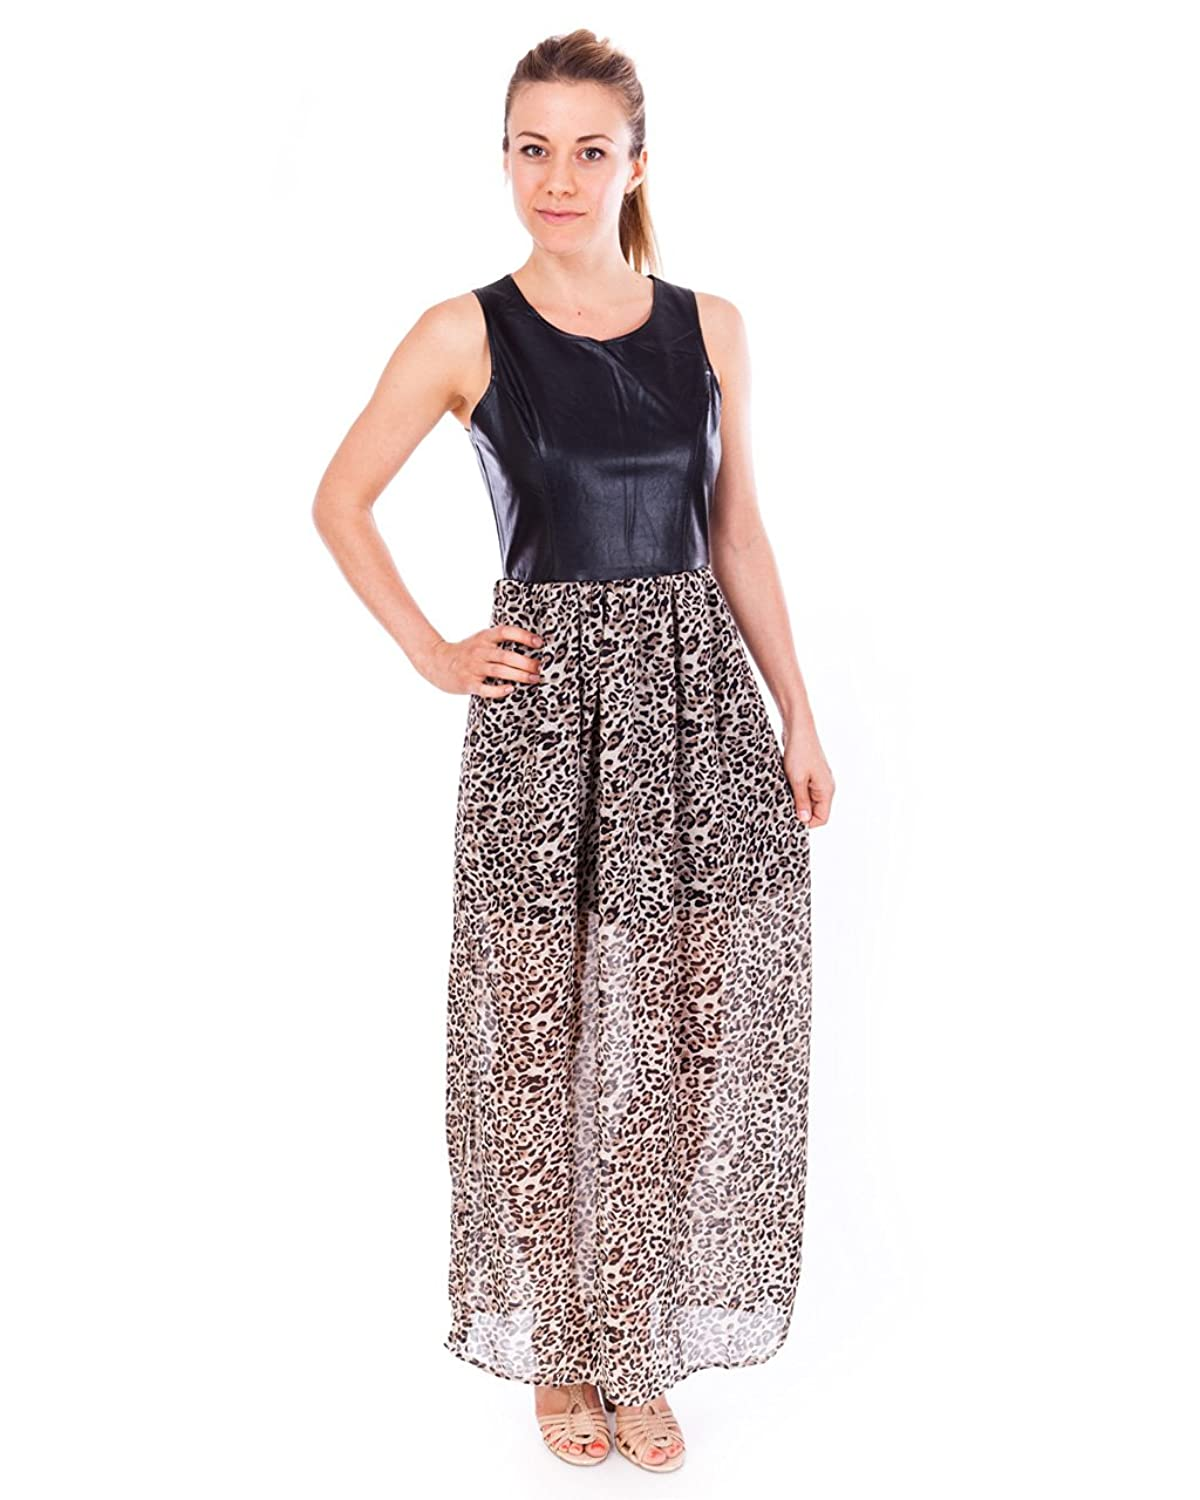 Clothes Effect Ladies Black Dress with a Leopard Printed Sheer Zippered Skirt